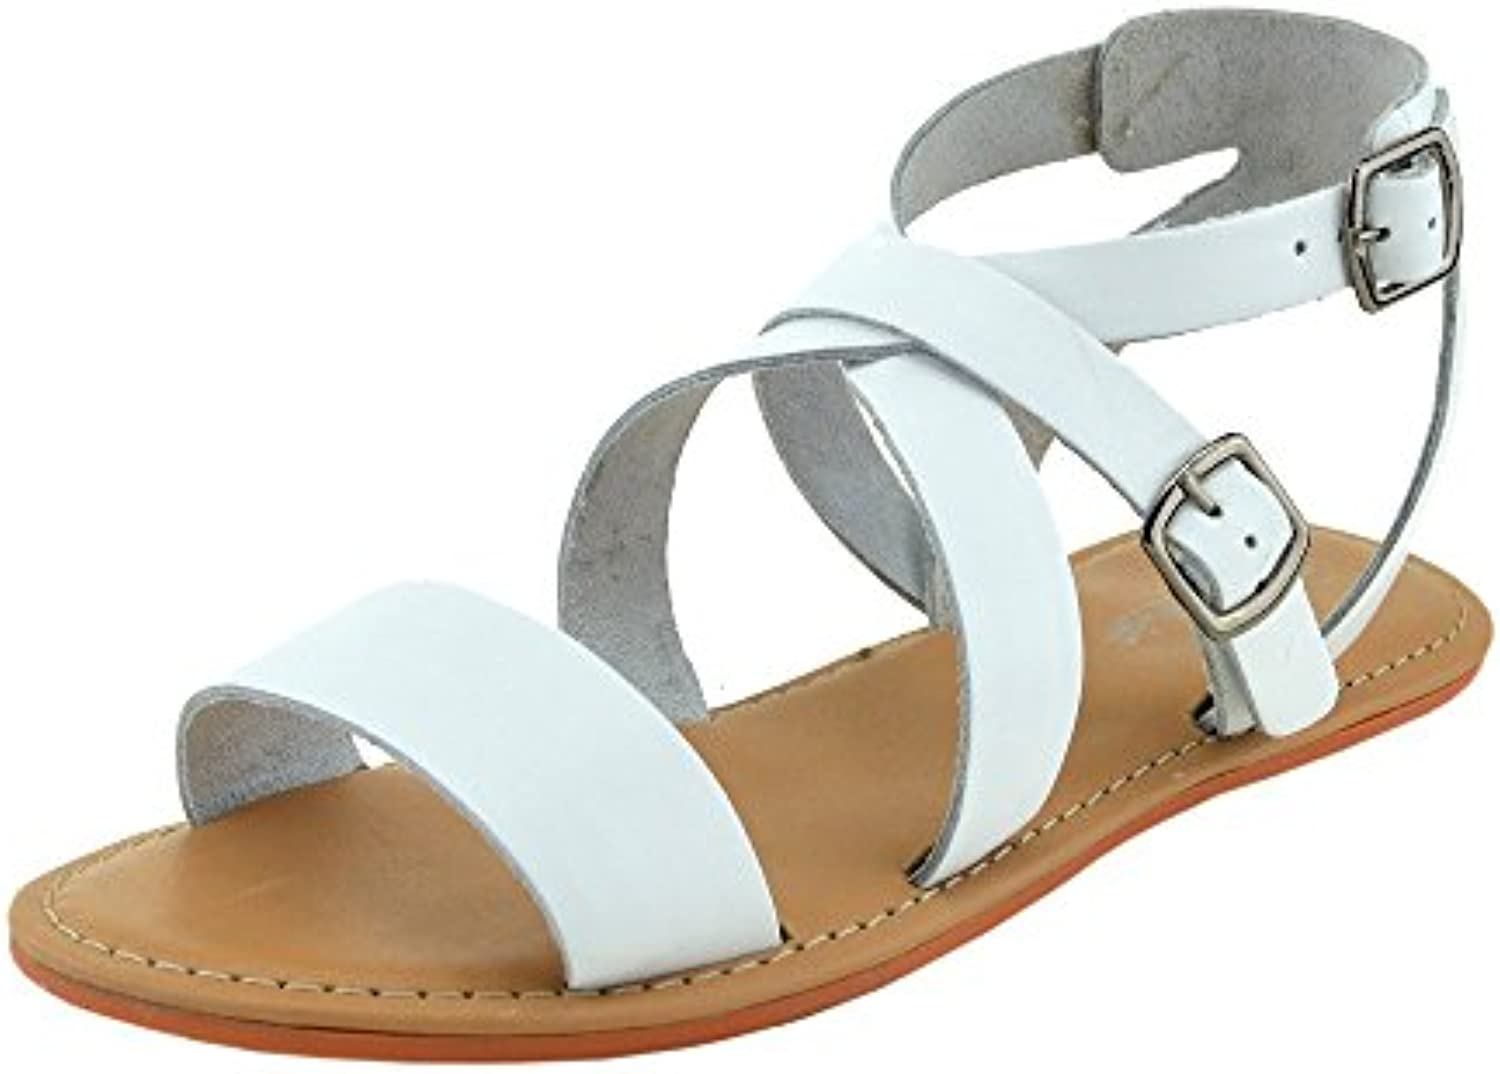 dae4b9bee006 Kick Footwear - Ladies Fashion Fashion Fashion Summer Casual Sandals  Natural Leather Shoes B01EVXOQCE Parent a7f53d